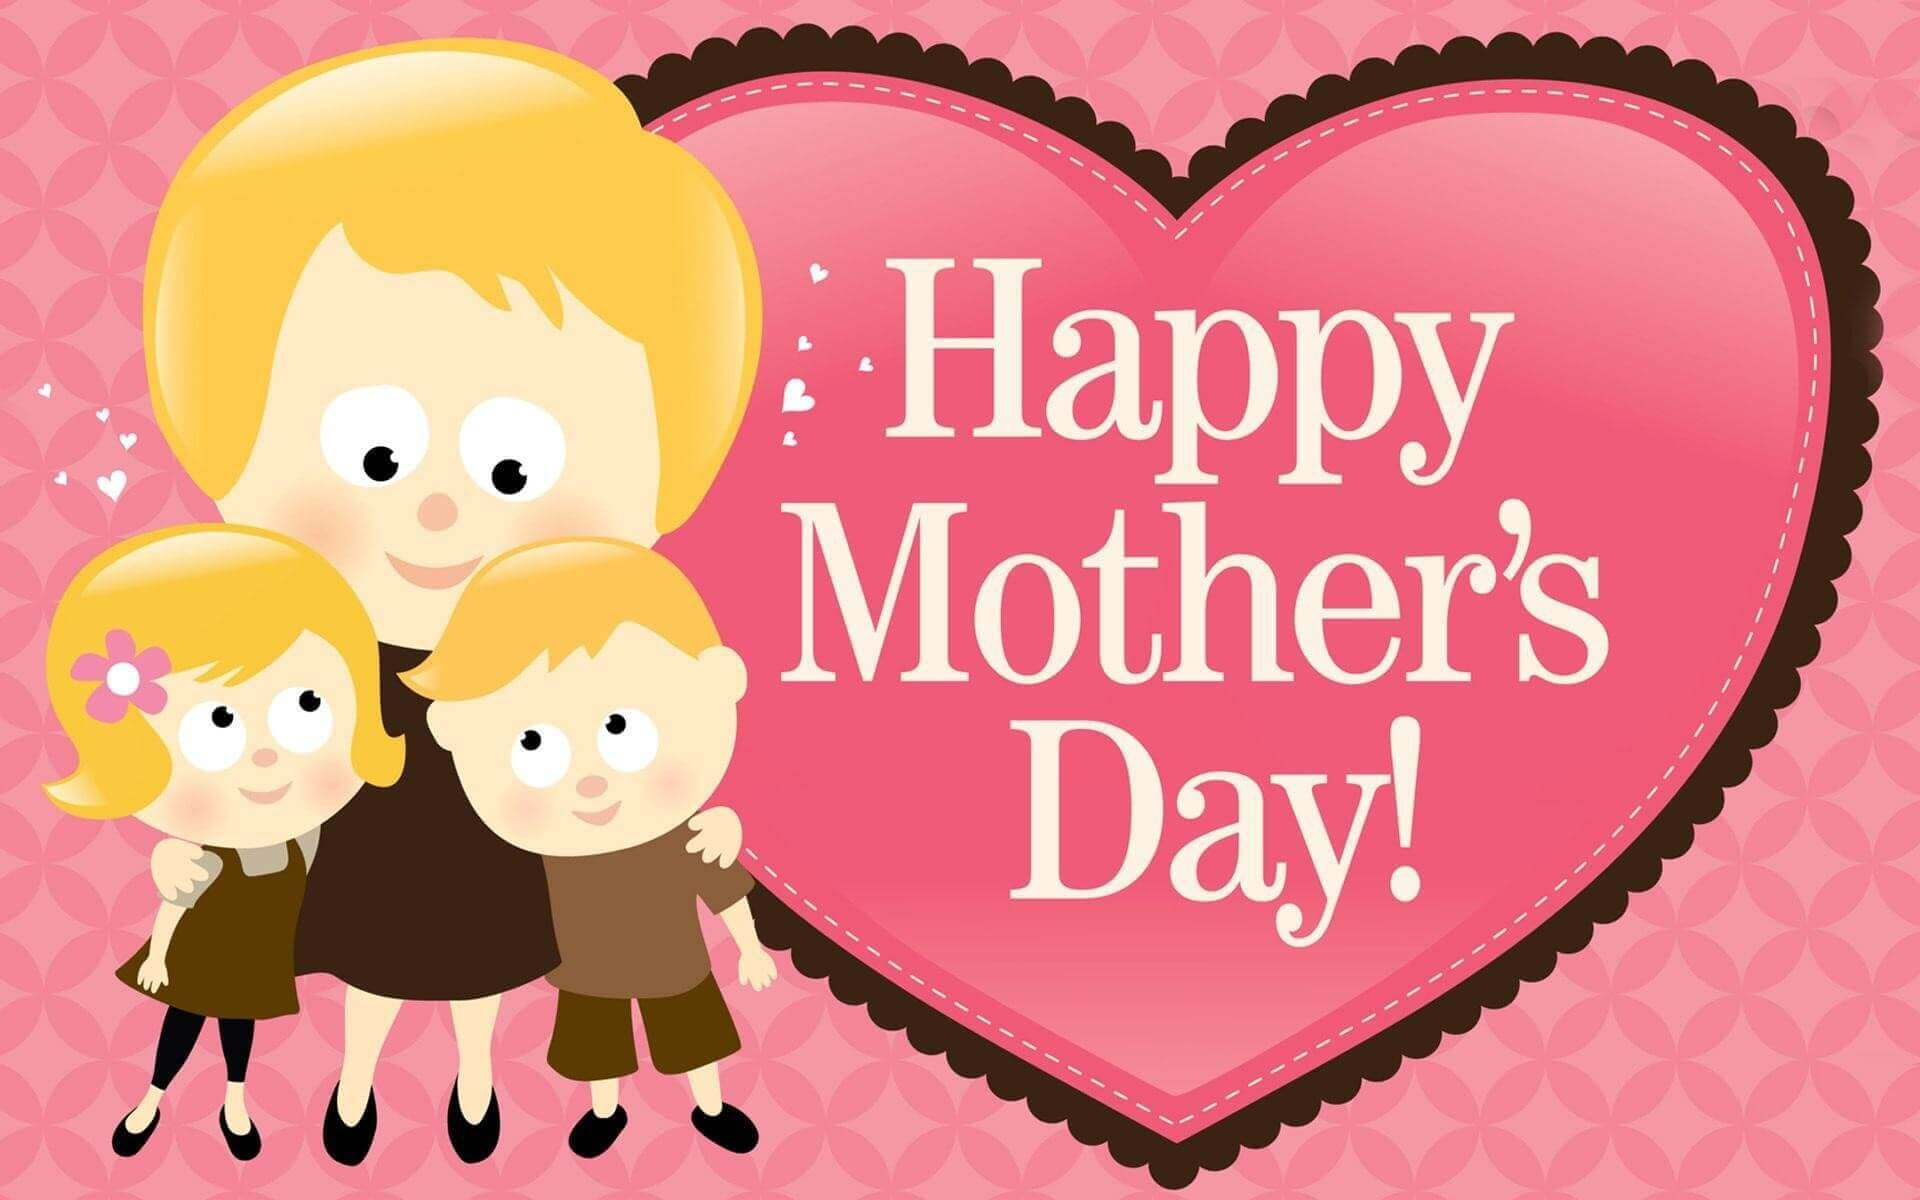 Happy Mothers Day heart pics with mother holding kids